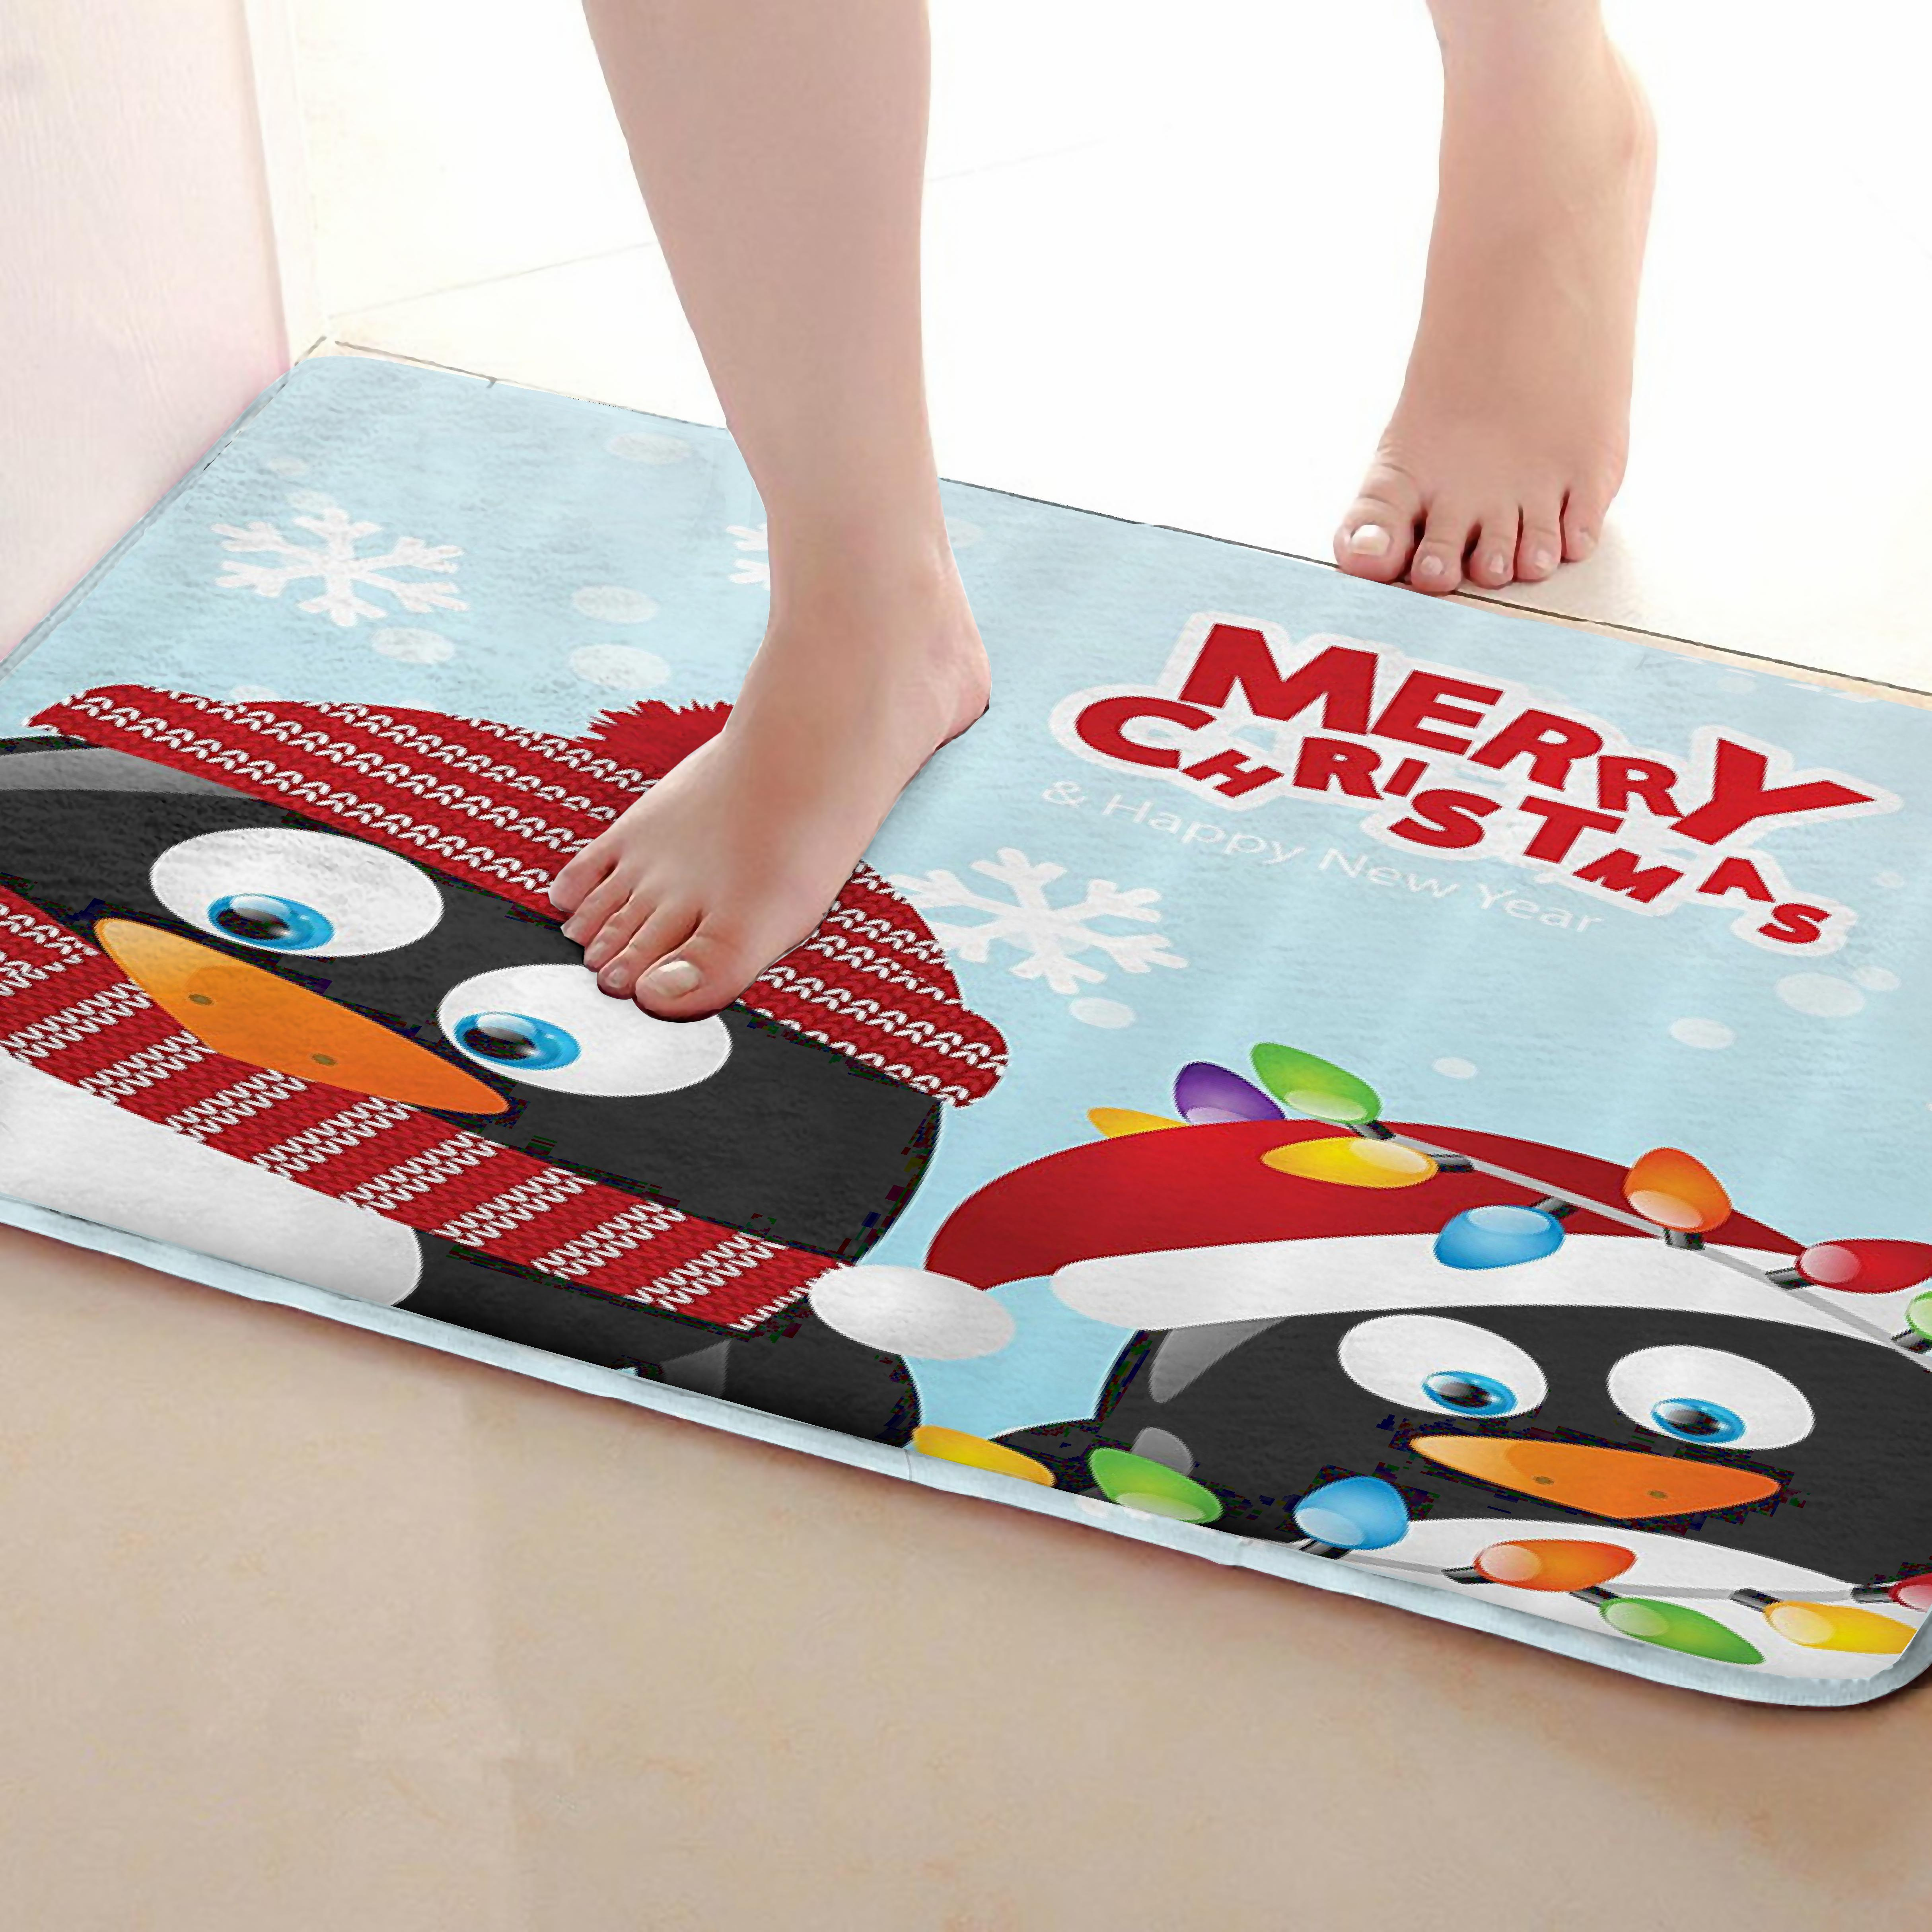 Penguin Style Bathroom Mat,Funny Anti Skid Bath Mat,Shower Curtains Accessories,Matching Your Shower Curtain